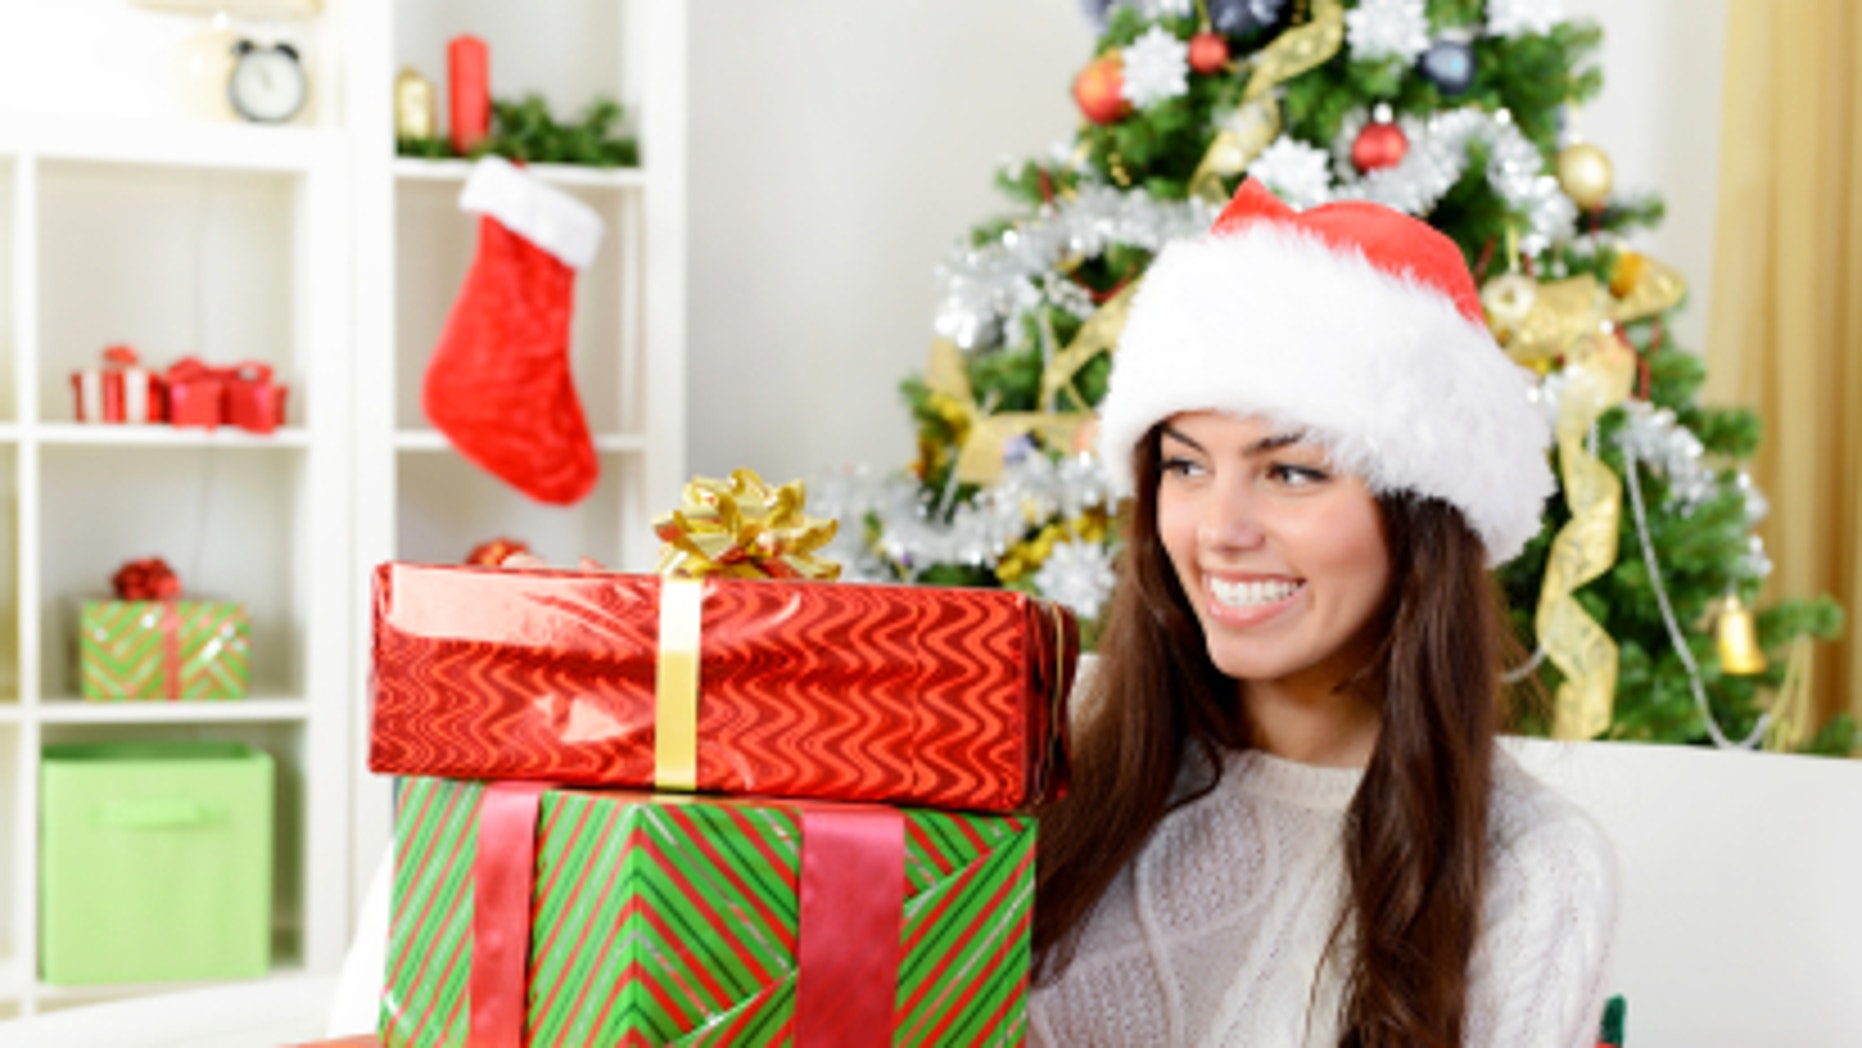 Christmas Gift For Roommates.A Guide To Holiday Gifts For Roommates Fox News